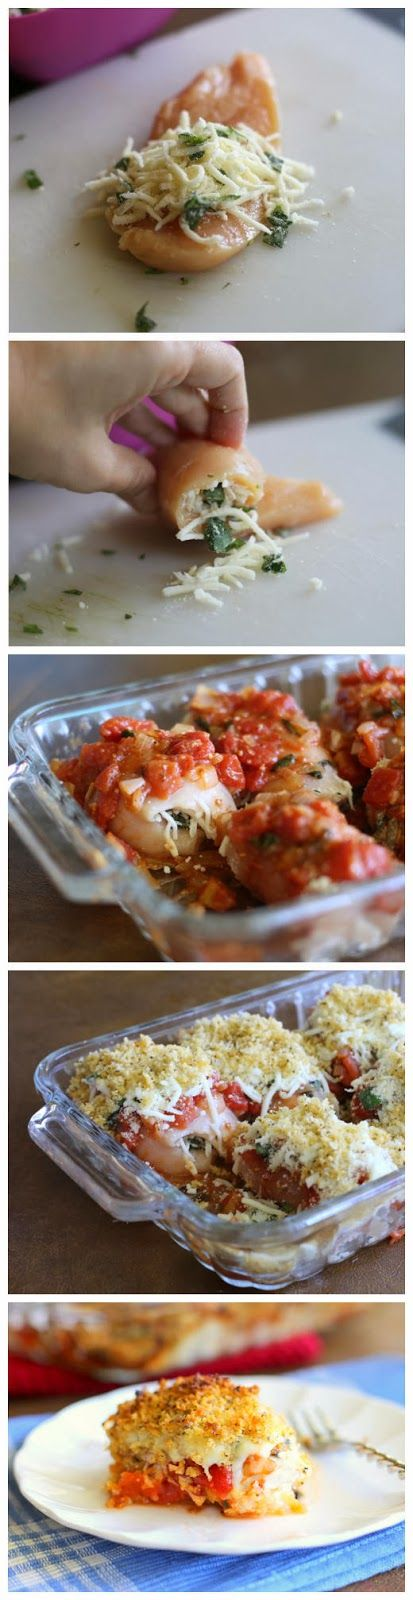 When one thinks of chicken parmesan, the usual image is of a breaded chicken cutlet fried and baked in the…